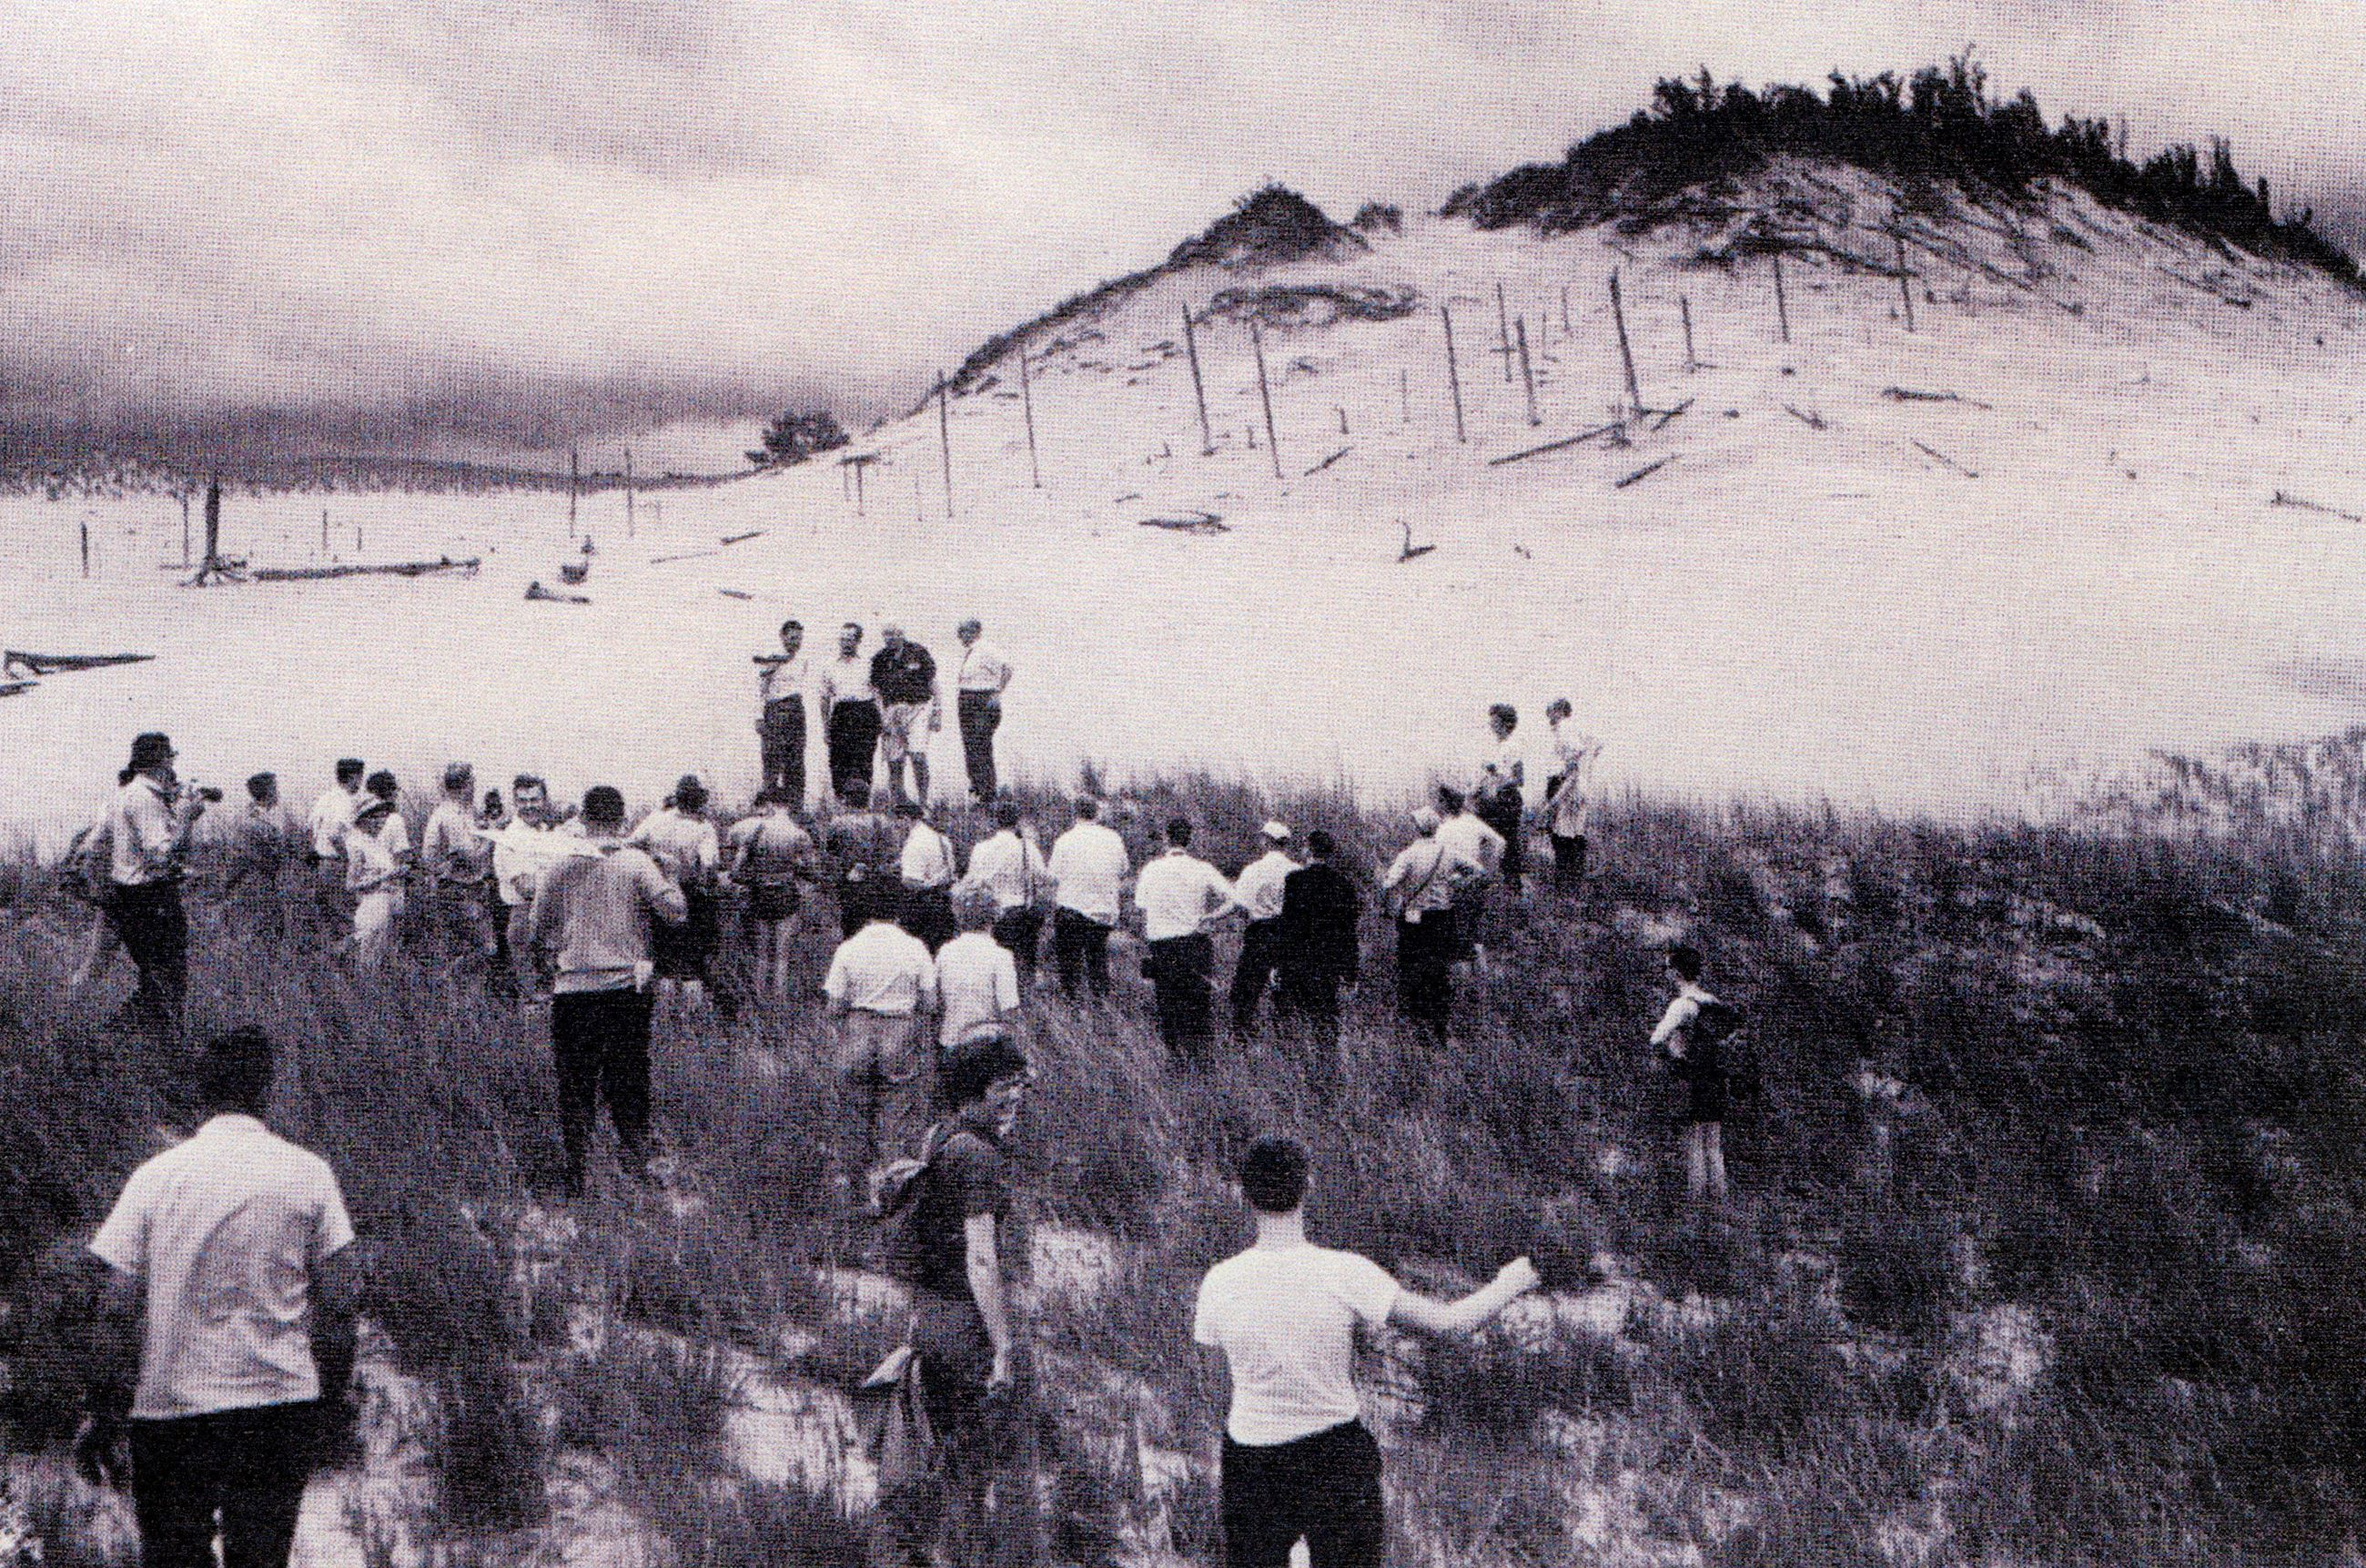 Pilgrimage to the Central Dunes, July 23, 1961, with Howlin' Hill in the distance